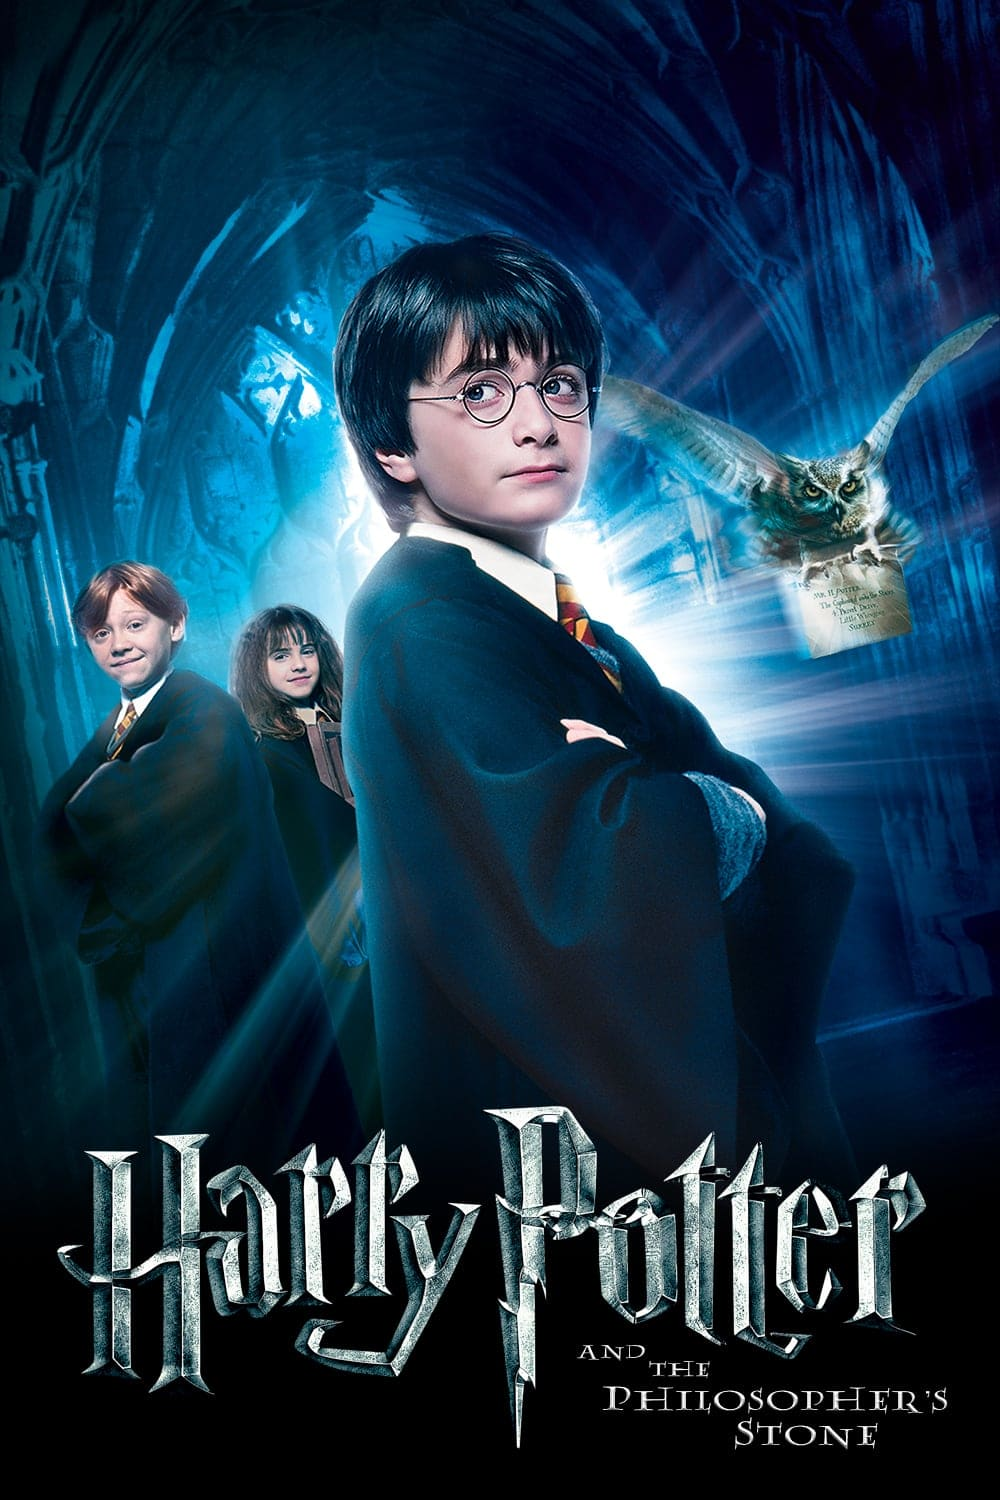 harry potter poster the philosophers stone high quality HD printable wallpapers hermione ron and harry